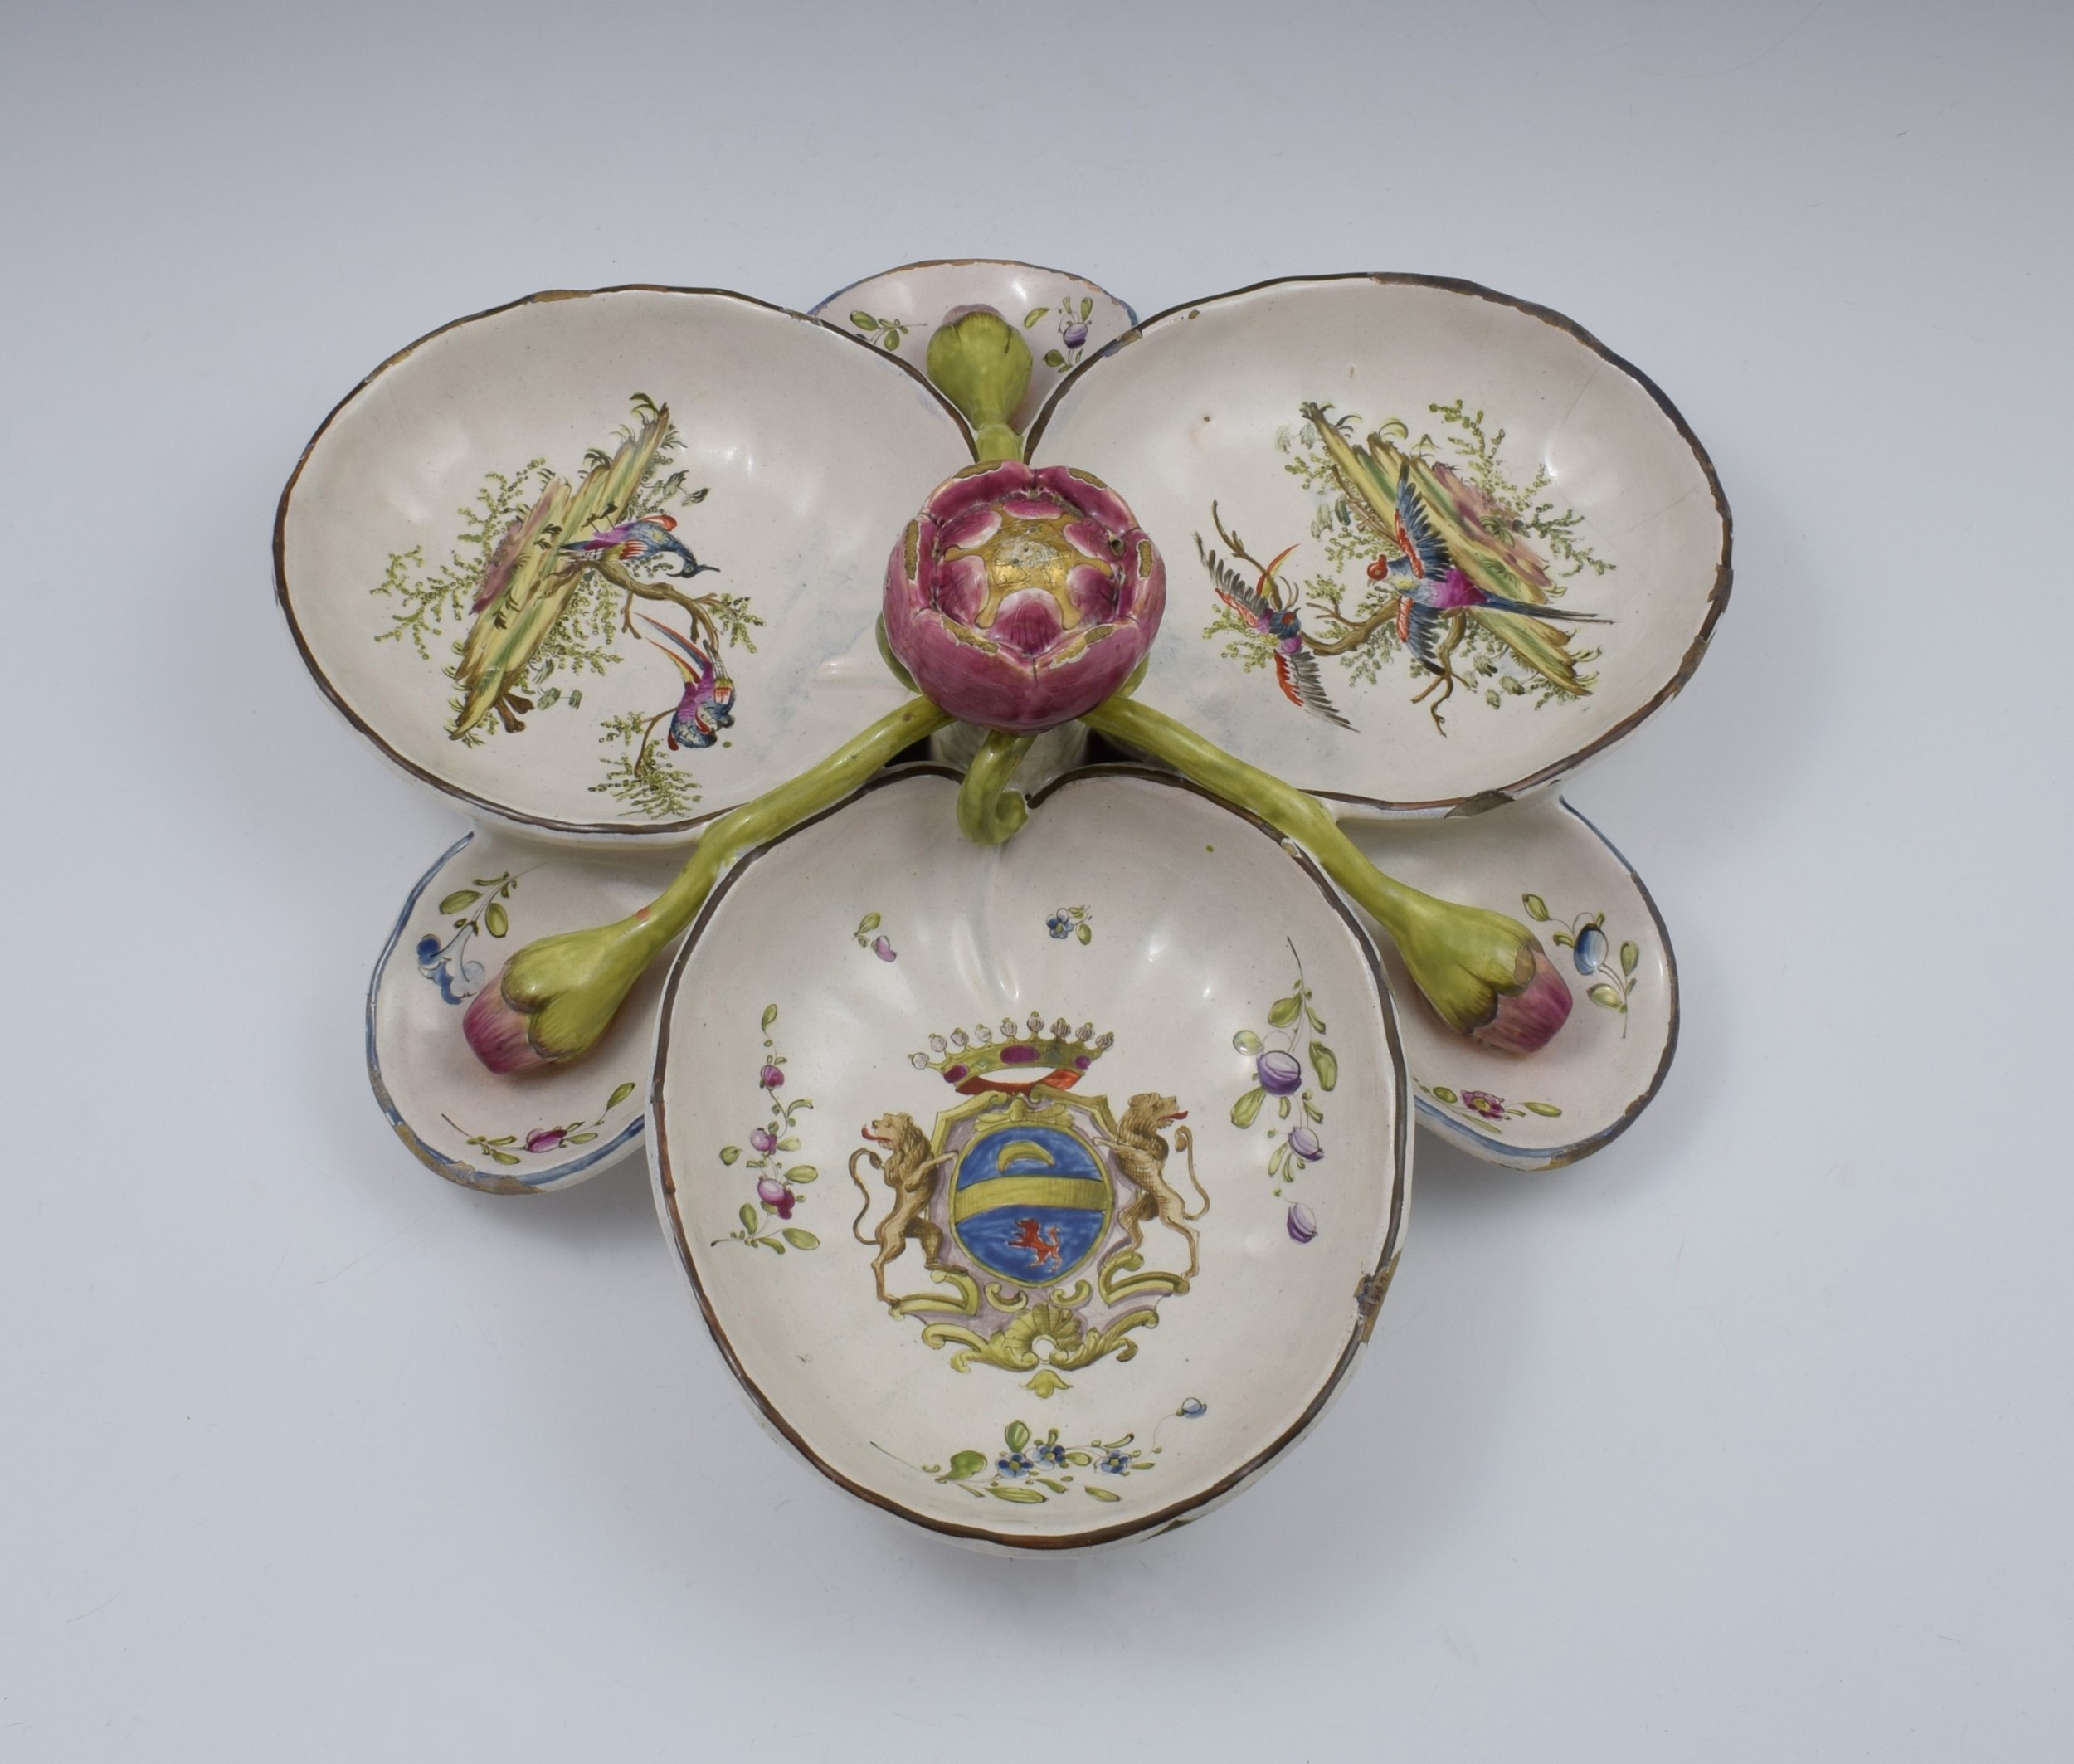 large 19thc french faience sweetmeat hors d'oeuvres dish